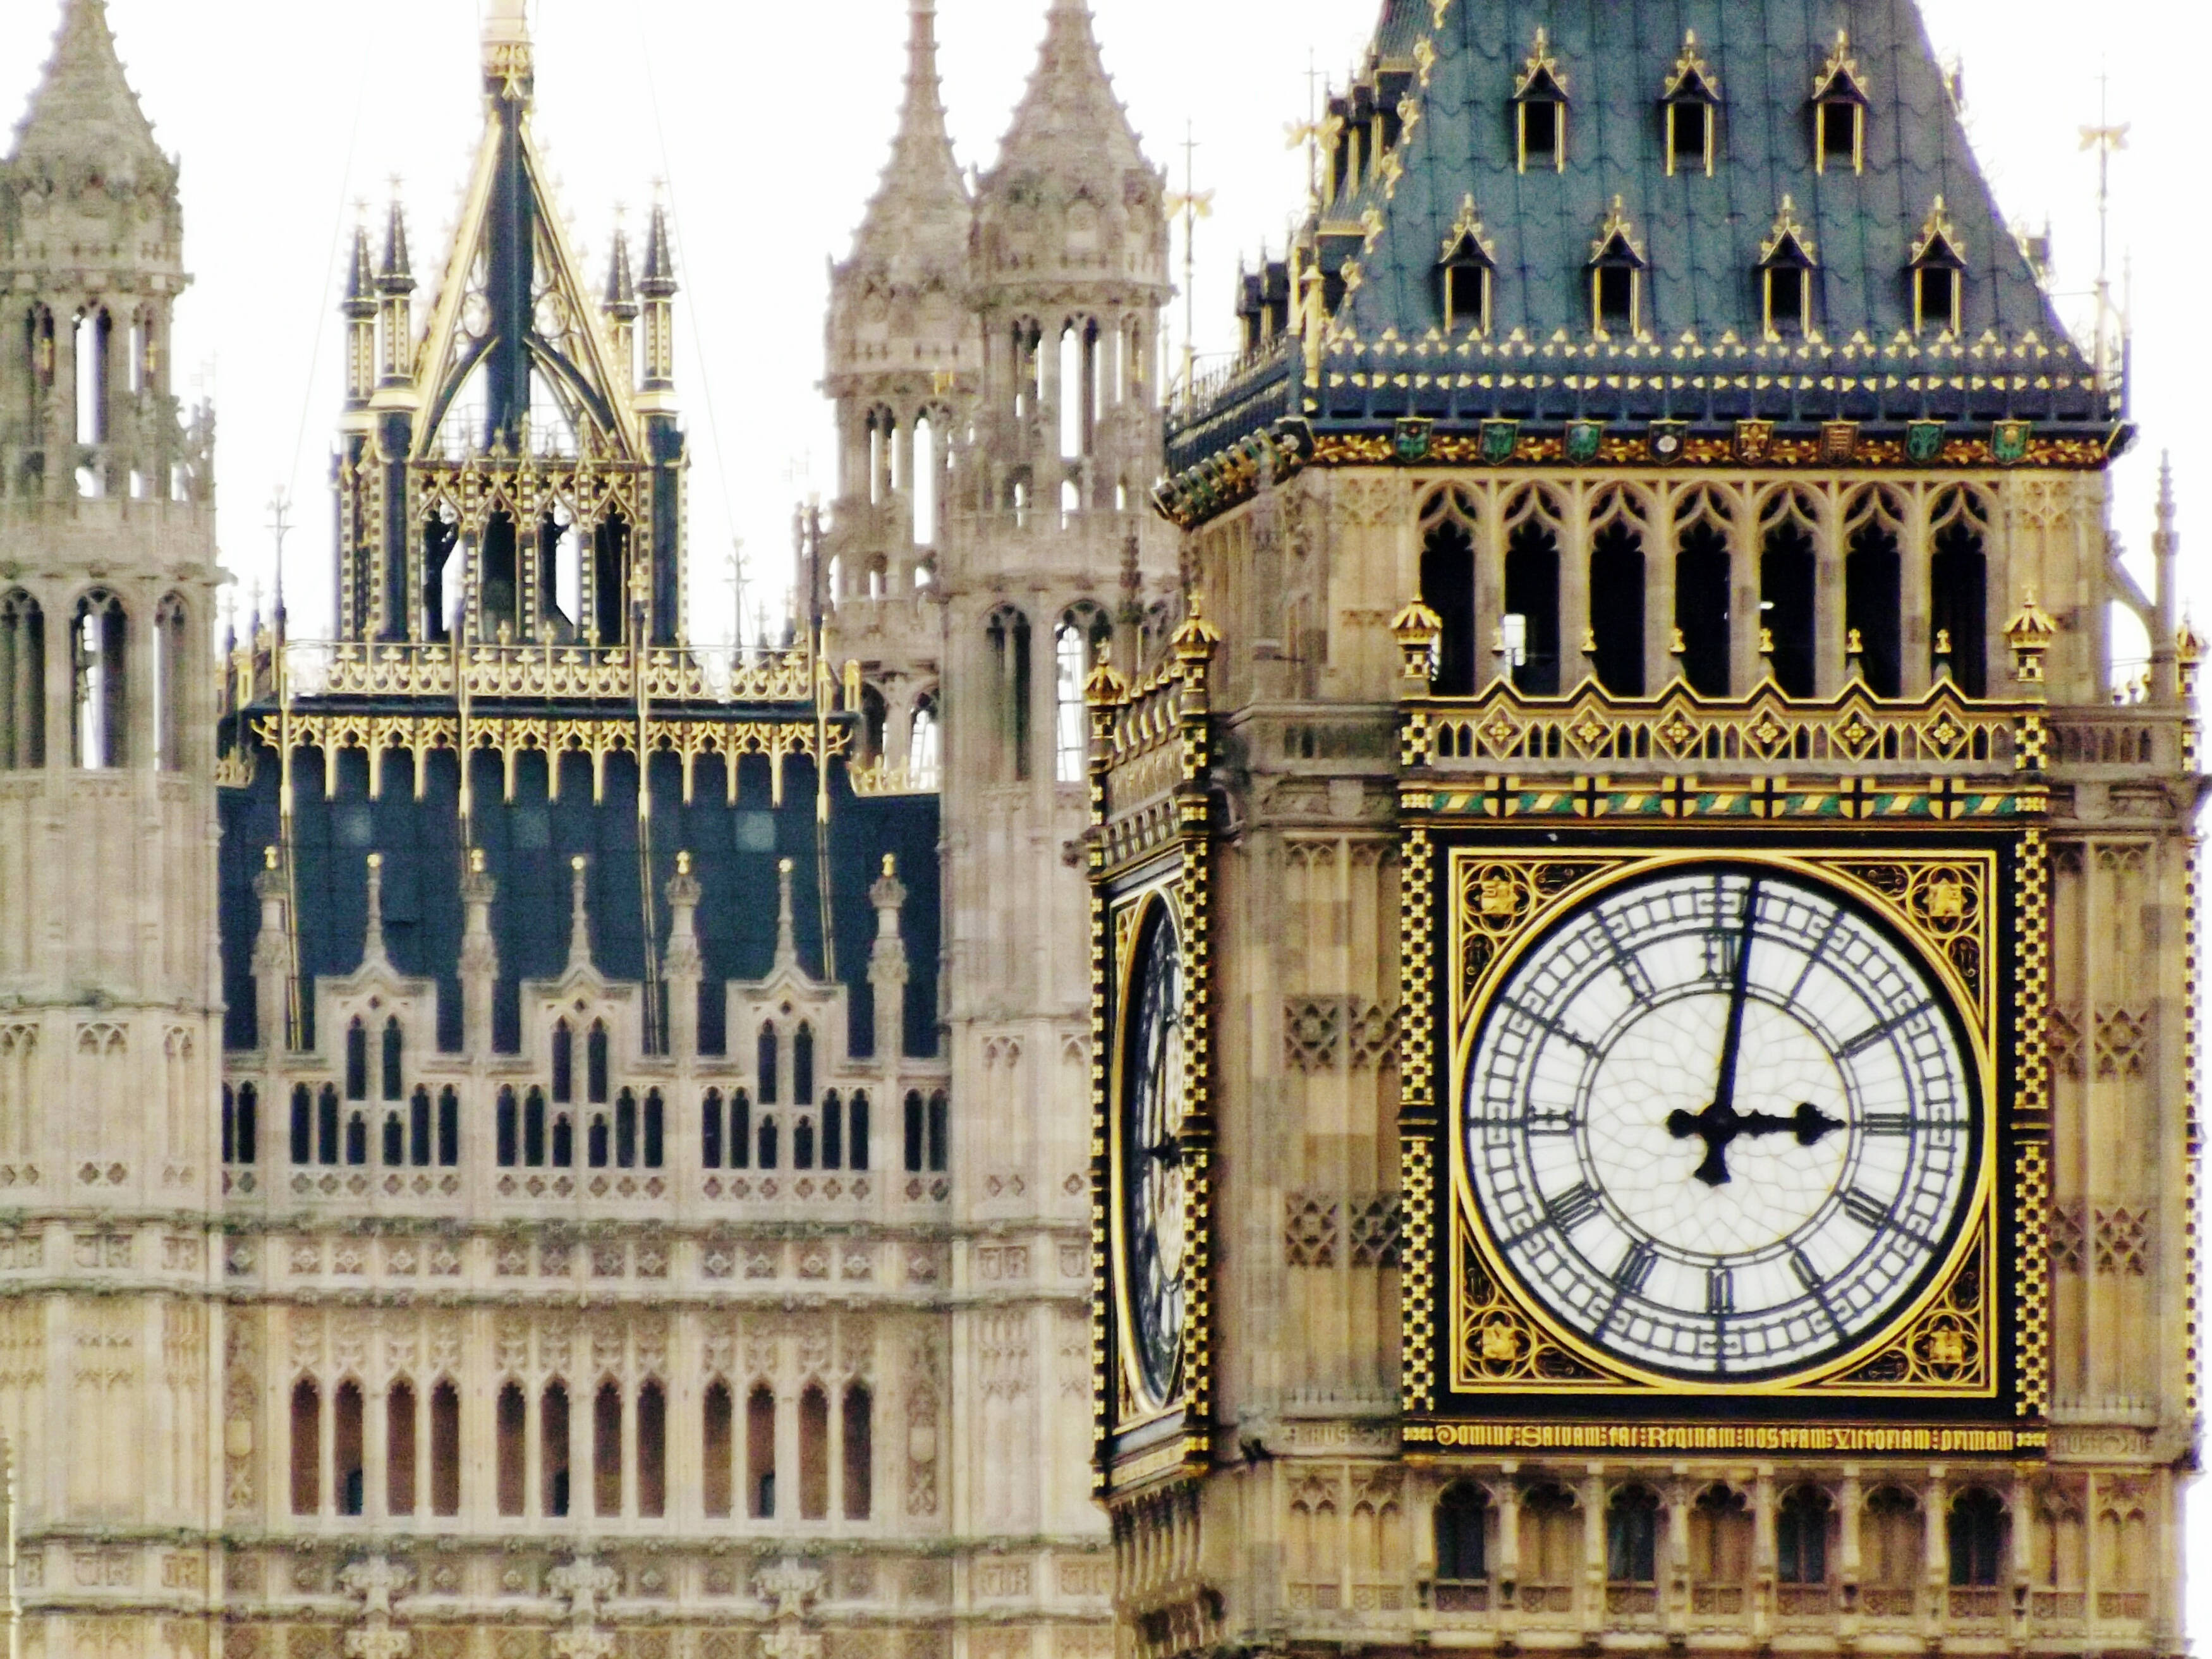 Close-up of Big Ben in London.